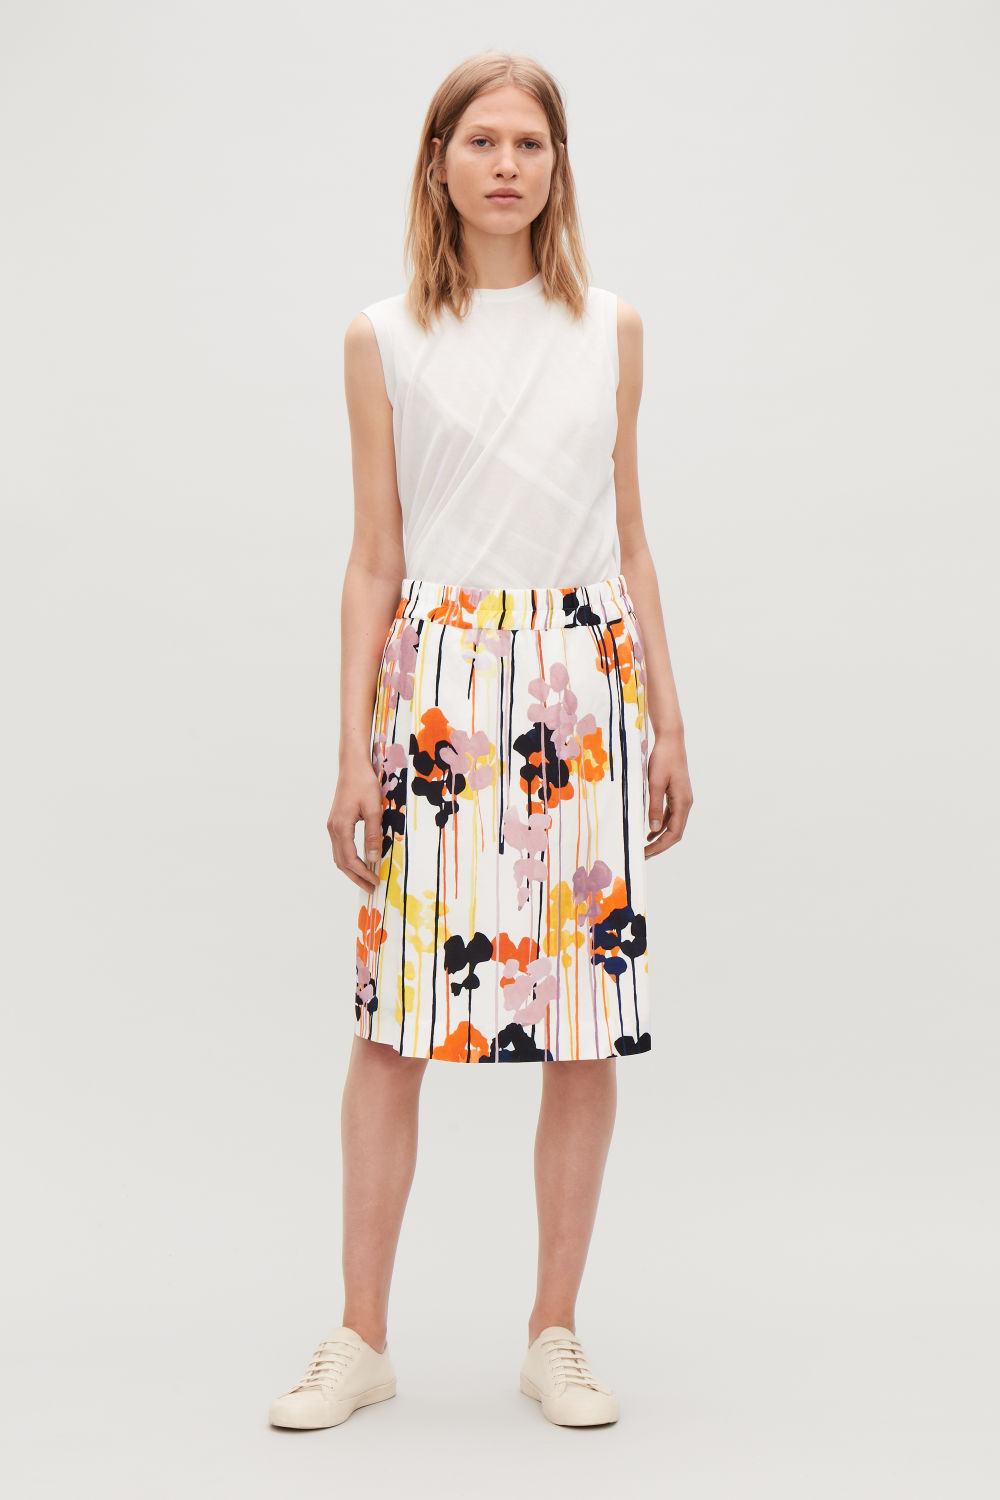 ELASTICATED FLORAL-PRINTED SKIRT